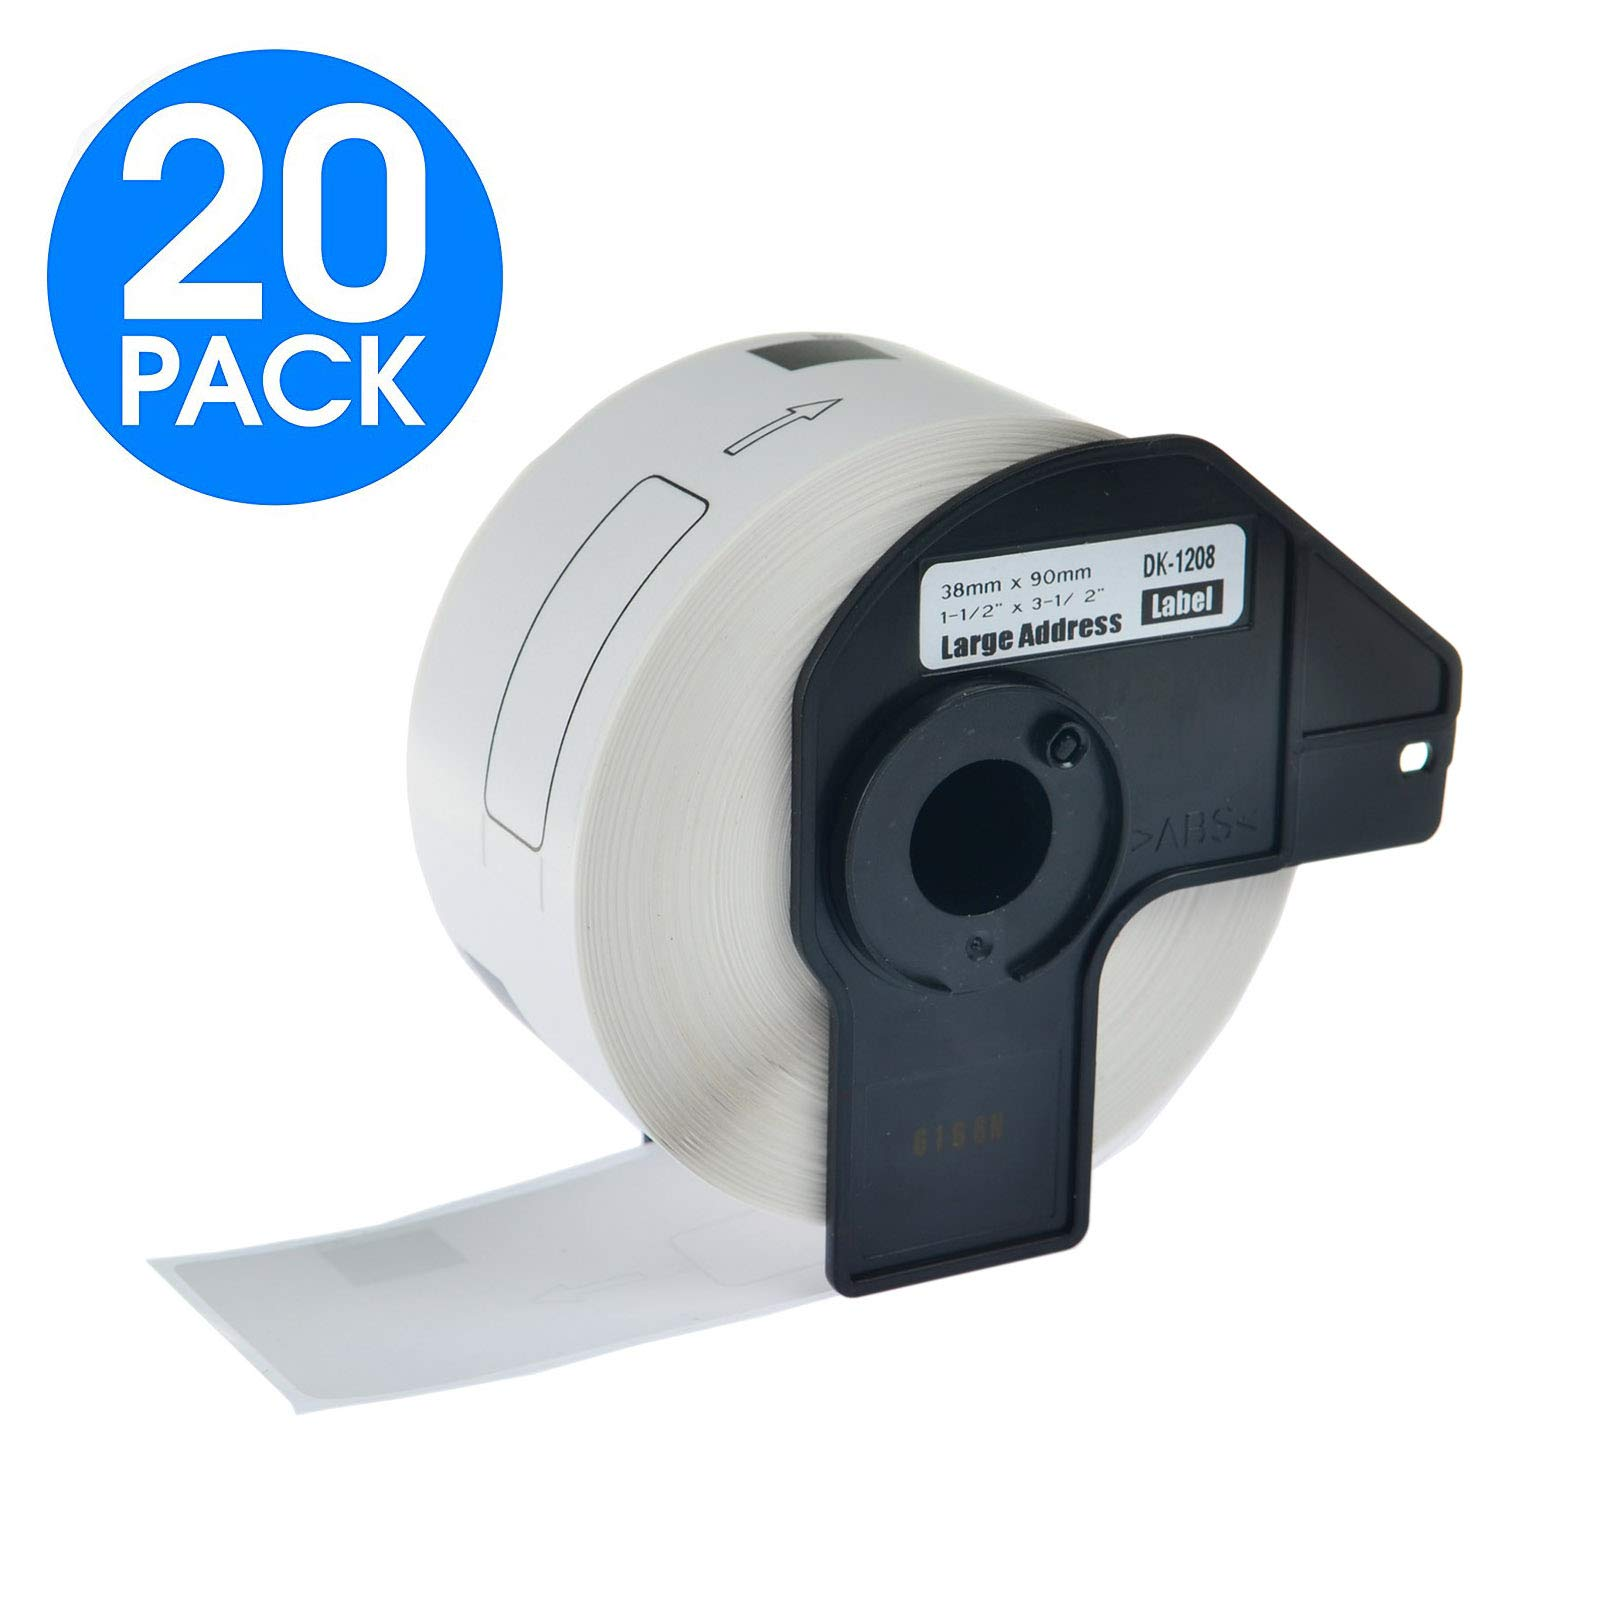 KCYMTONER 20 Rolls DK-1208 Continuous Length Address Paper Labels,38mm x 90mm 3-1/2X1-1/2,Compatible with Brother P-Touch QL-Series Printers QL-560 QL-570 QL-700 QL-1060N,Includes (20) Snap-On-Frame